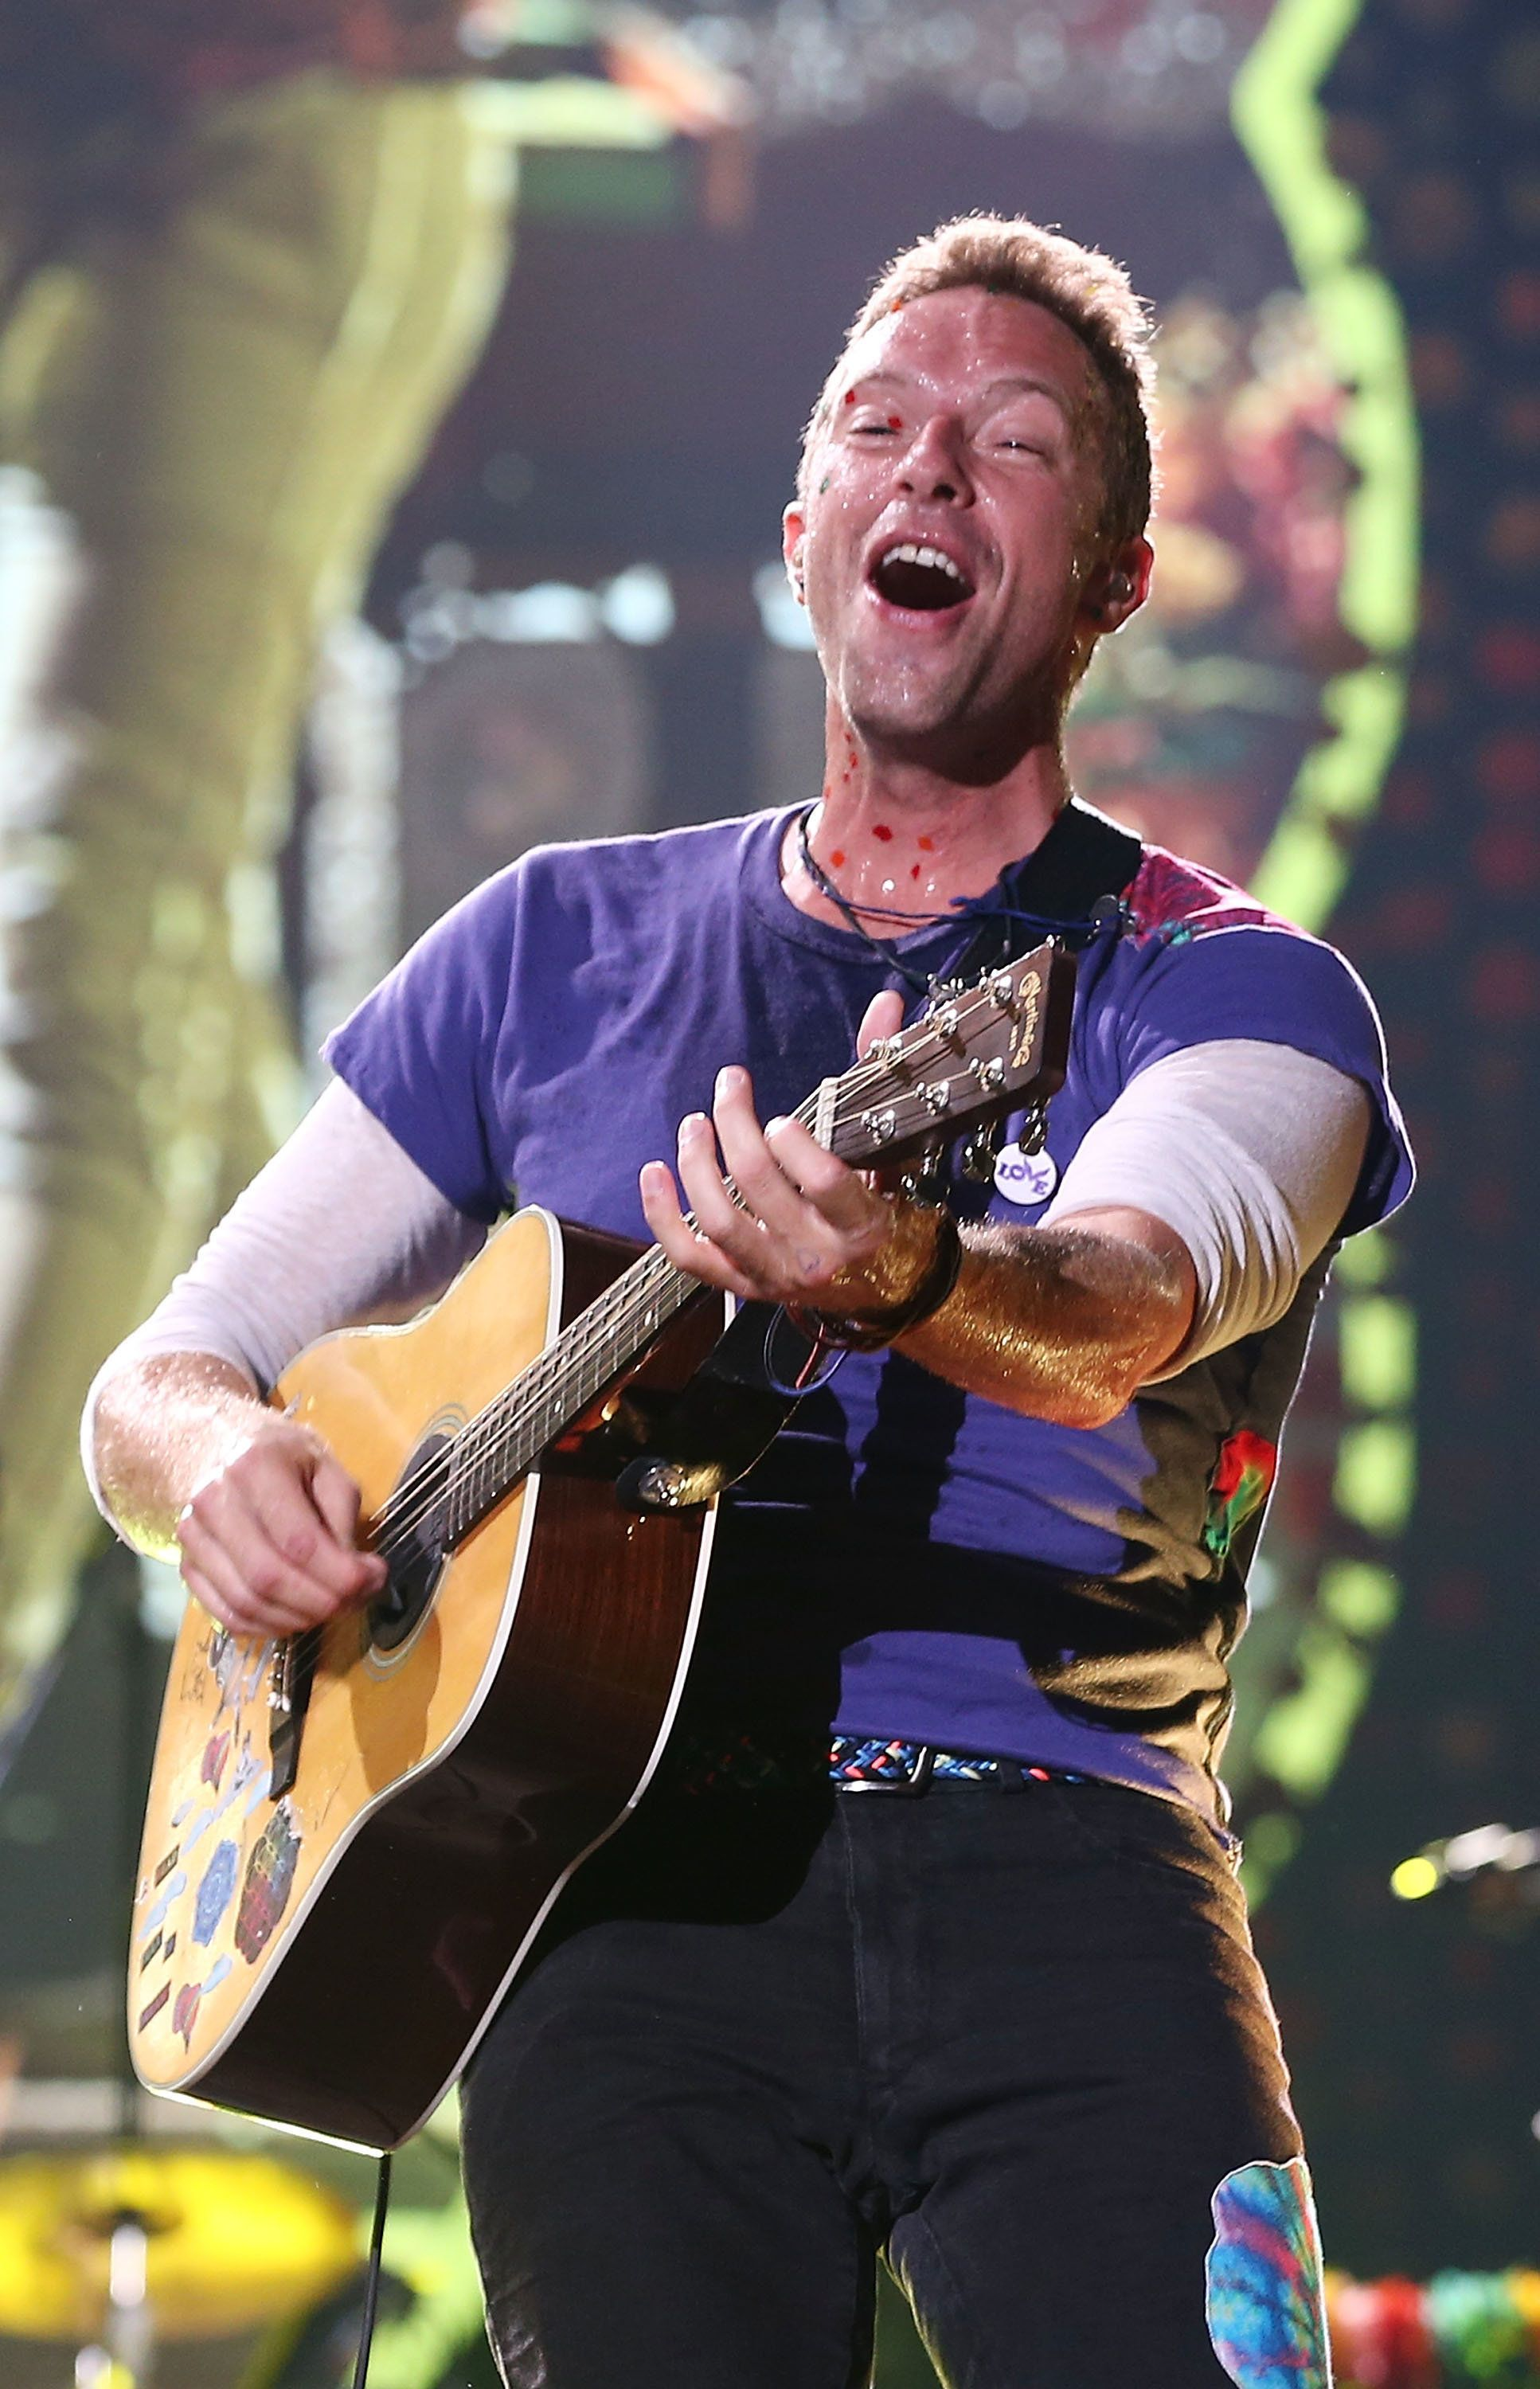 SYDNEY, AUSTRALIA - DECEMBER 13:  Chris Martin of Coldplay performs at Allianz Stadium on December 13, 2016 in Sydney, Australia.  (Photo by Mark Metcalfe/WireImage)